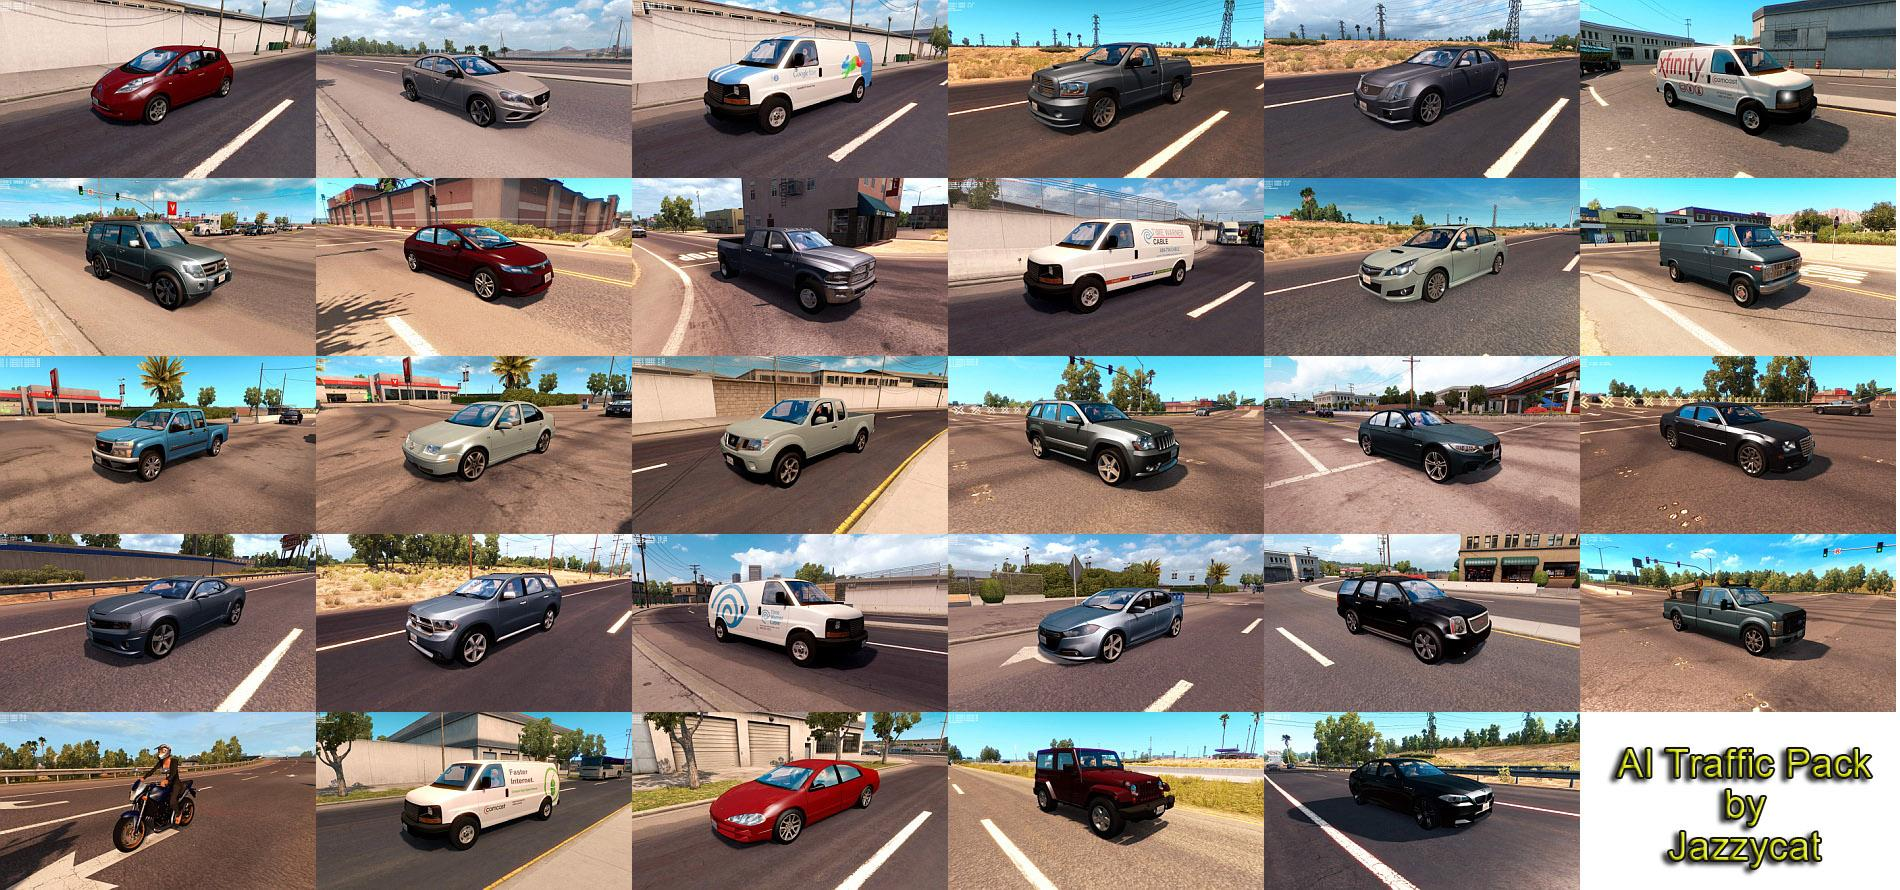 8347-ai-traffic-pack-by-jazzycat-v2-2_1